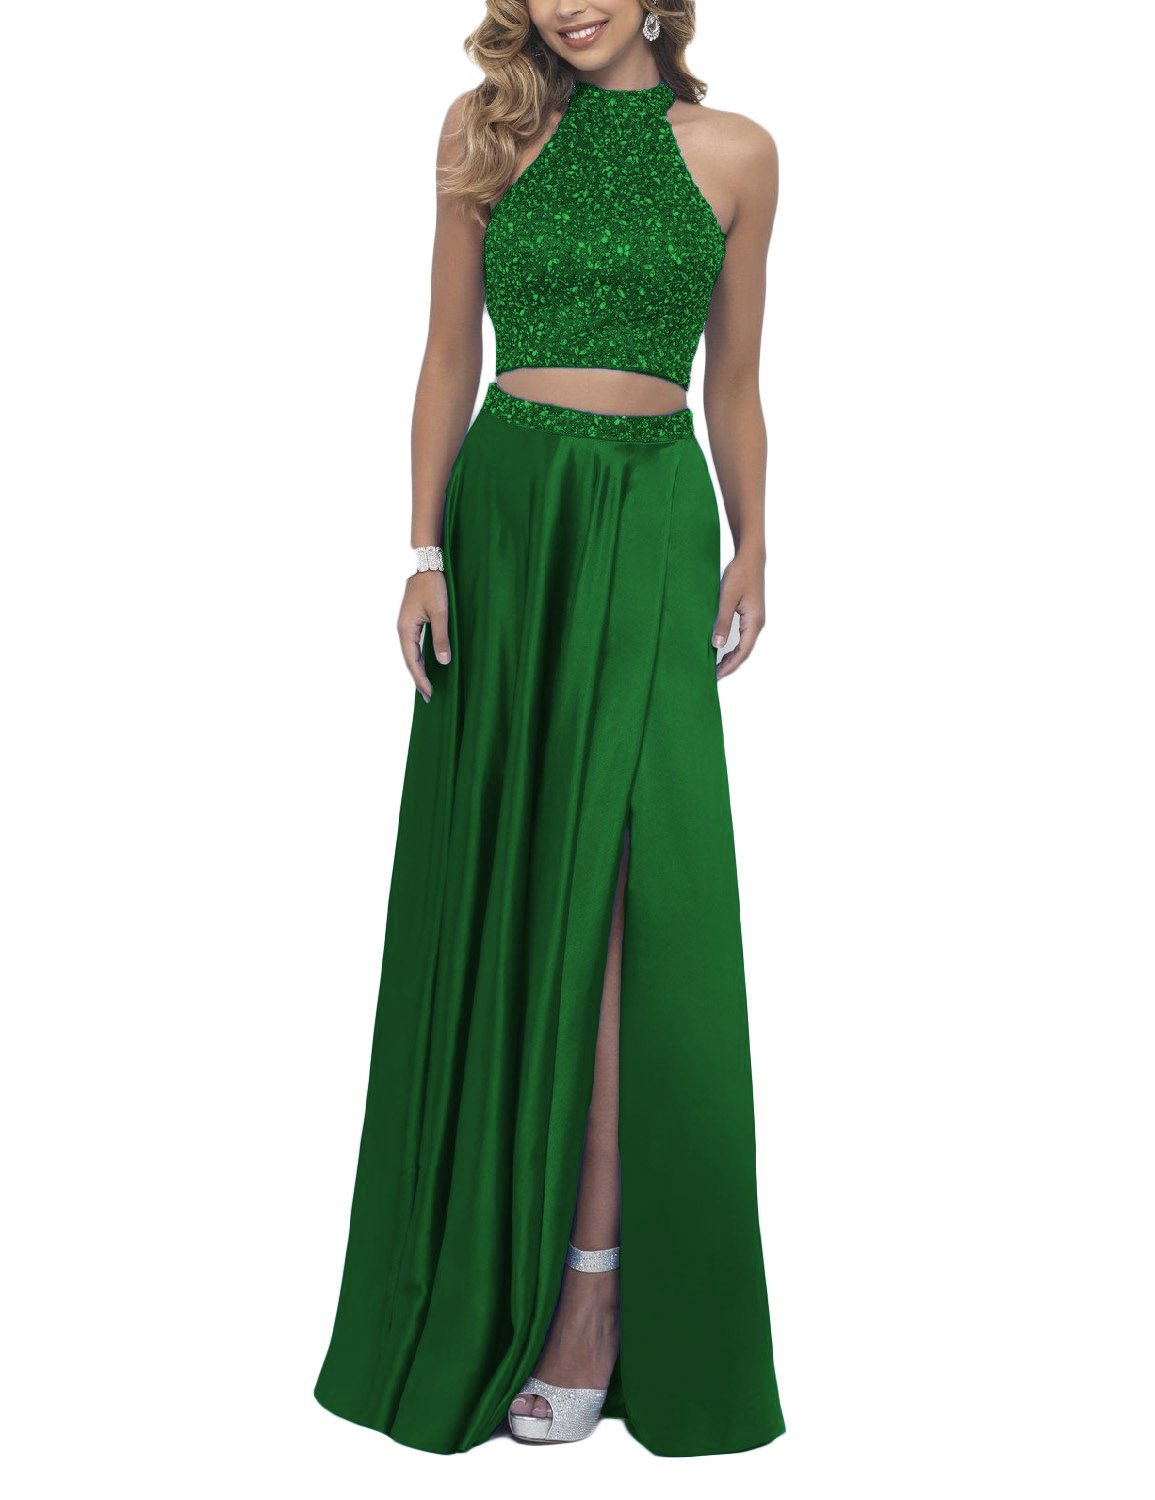 6b2623ac287a0 DarlingU Women's 2 Pieces Beaded Prom Party Gown Homecoming Cocktail Dresses  Green 4